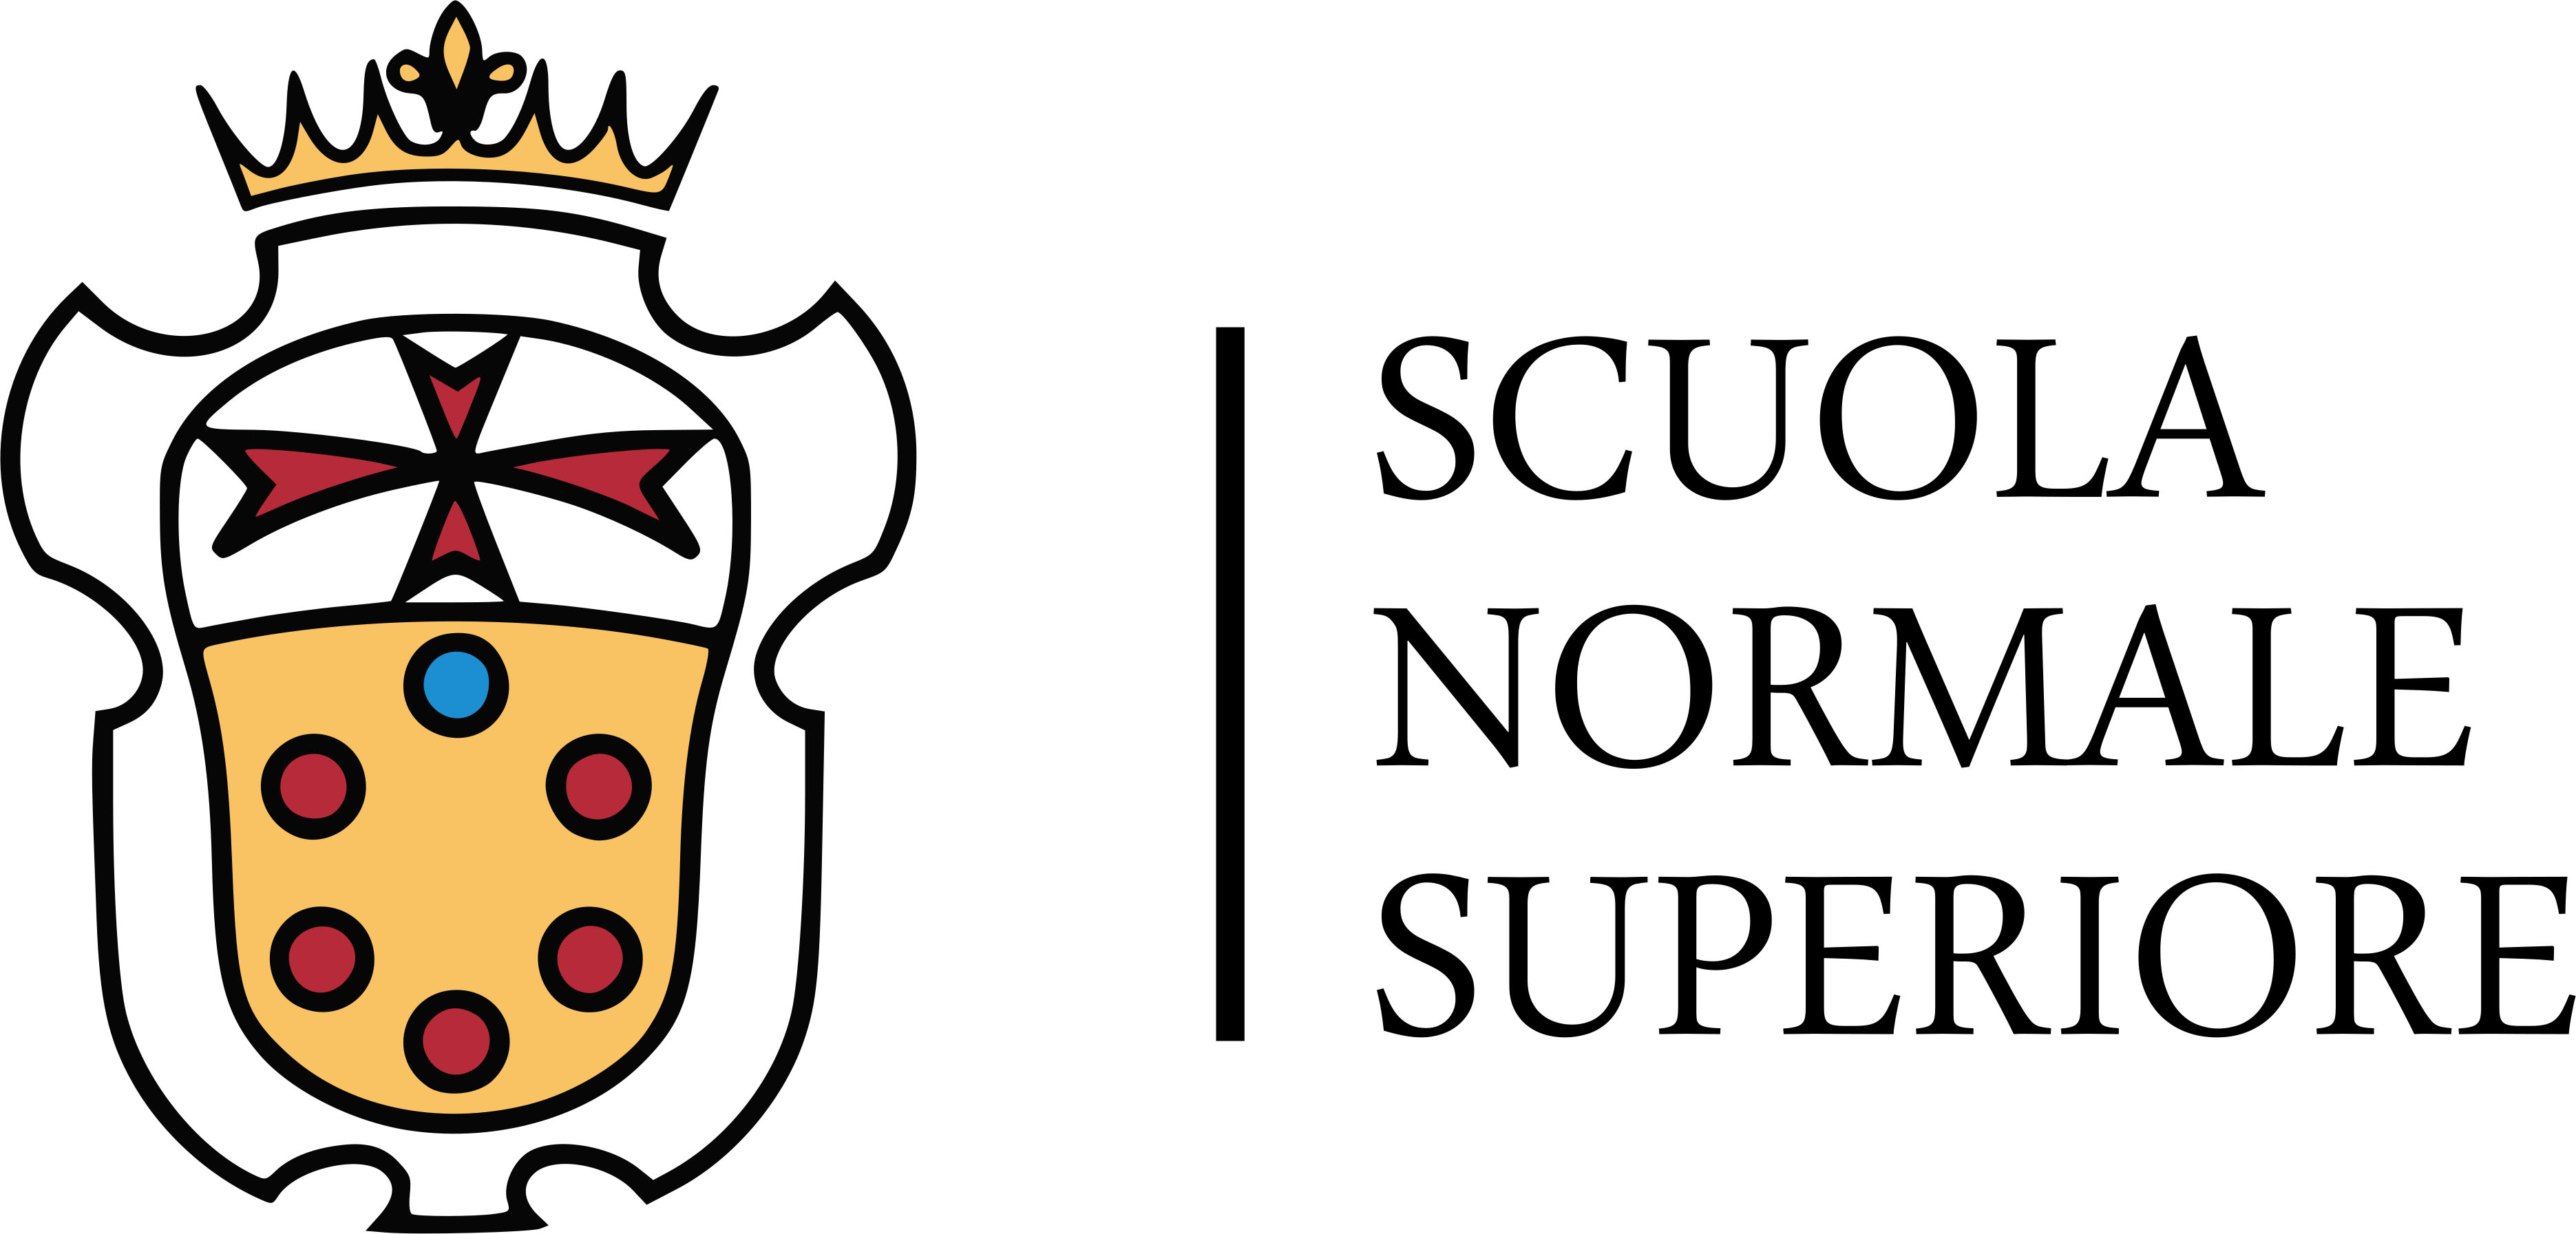 External Award: Scuola Normale Superiore PhD Scholarships.